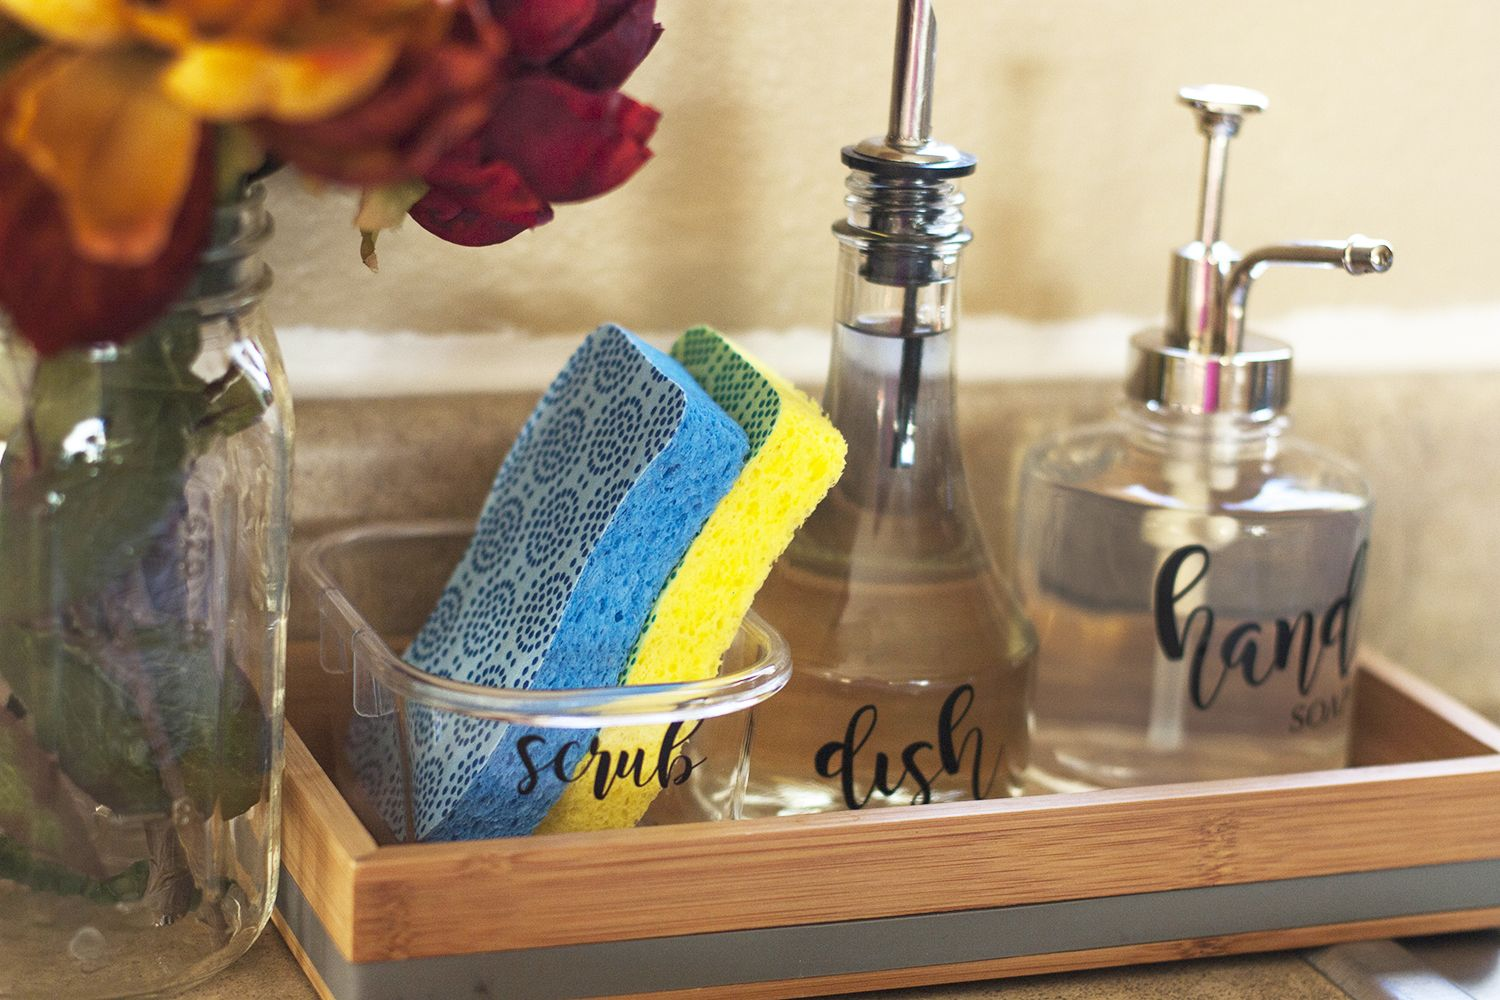 Making Cleanup Fast With An Organized Kitchen Sink Diy Soap